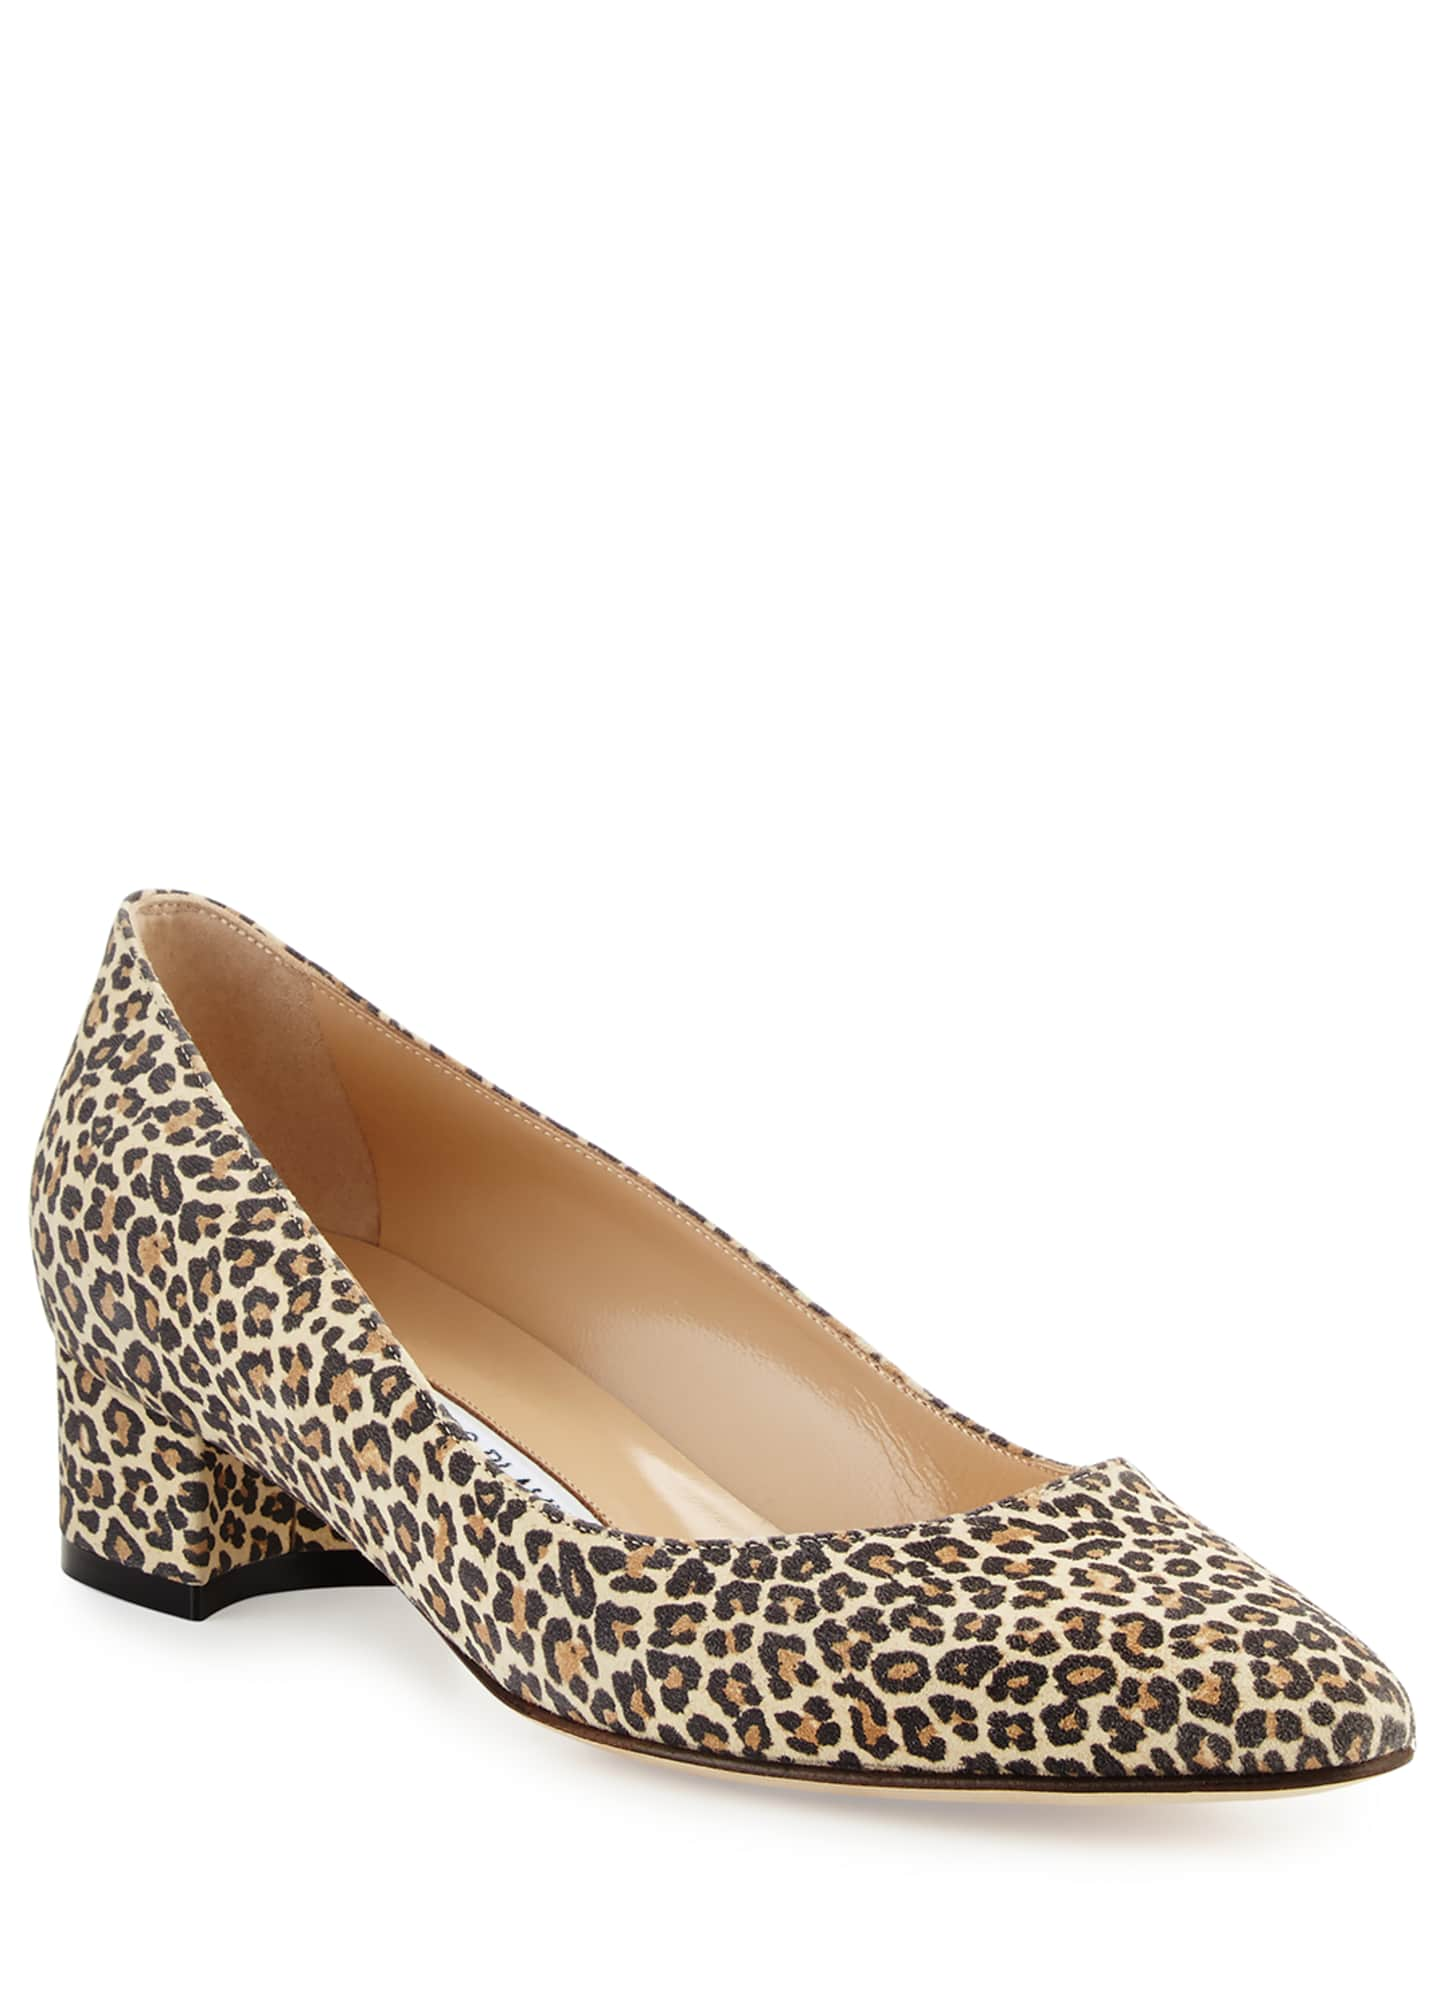 Image 1 of 5: Listony Suede Low-Heel Pumps